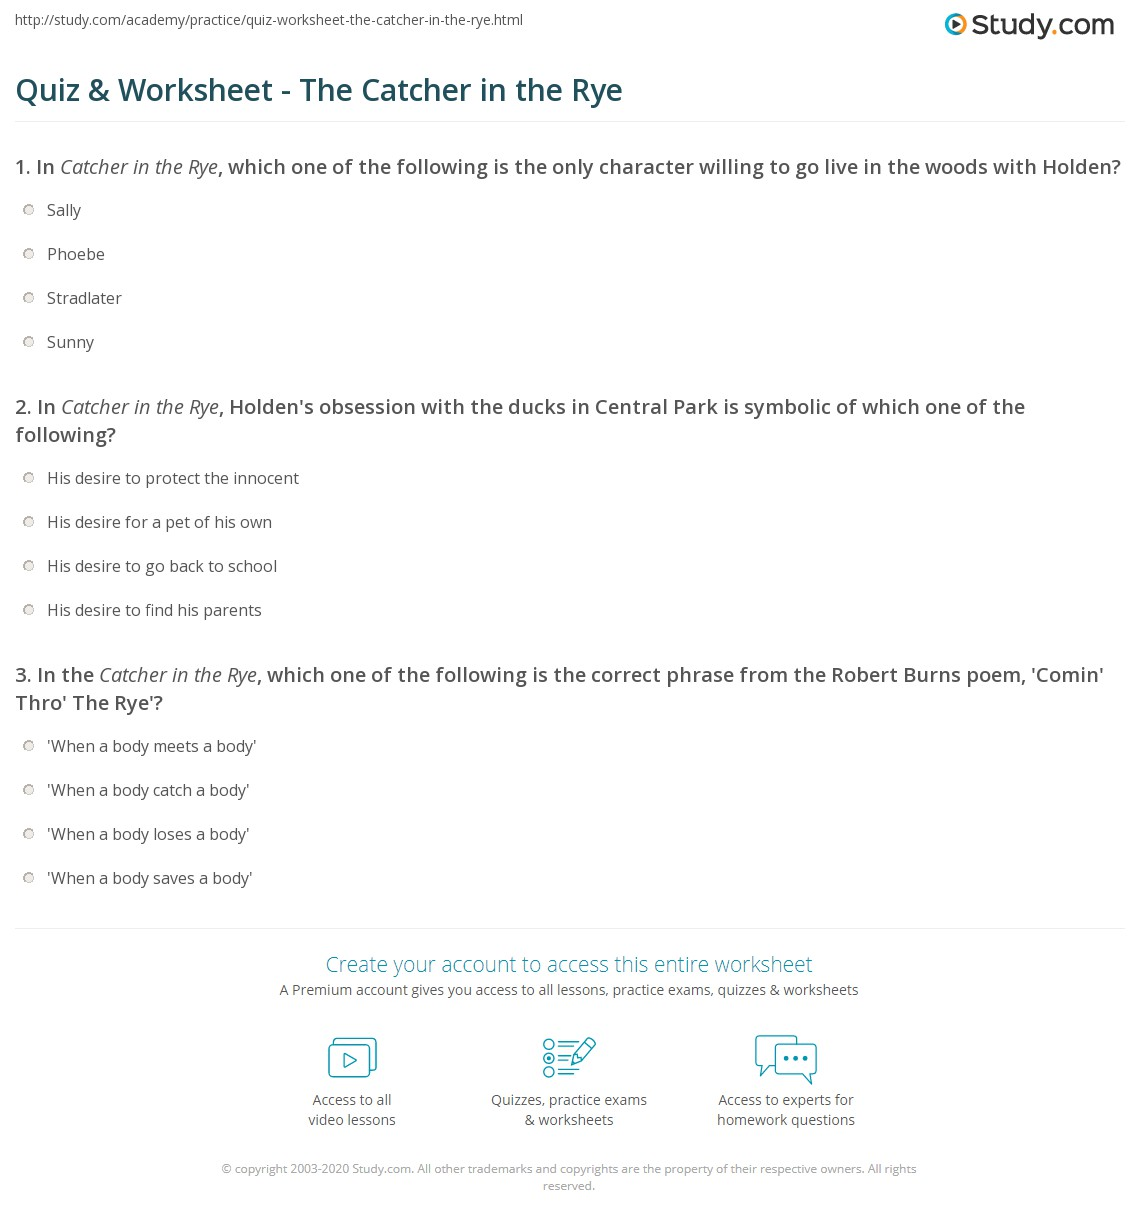 quiz worksheet the catcher in the rye study com print the catcher in the rye characters themes symbols worksheet